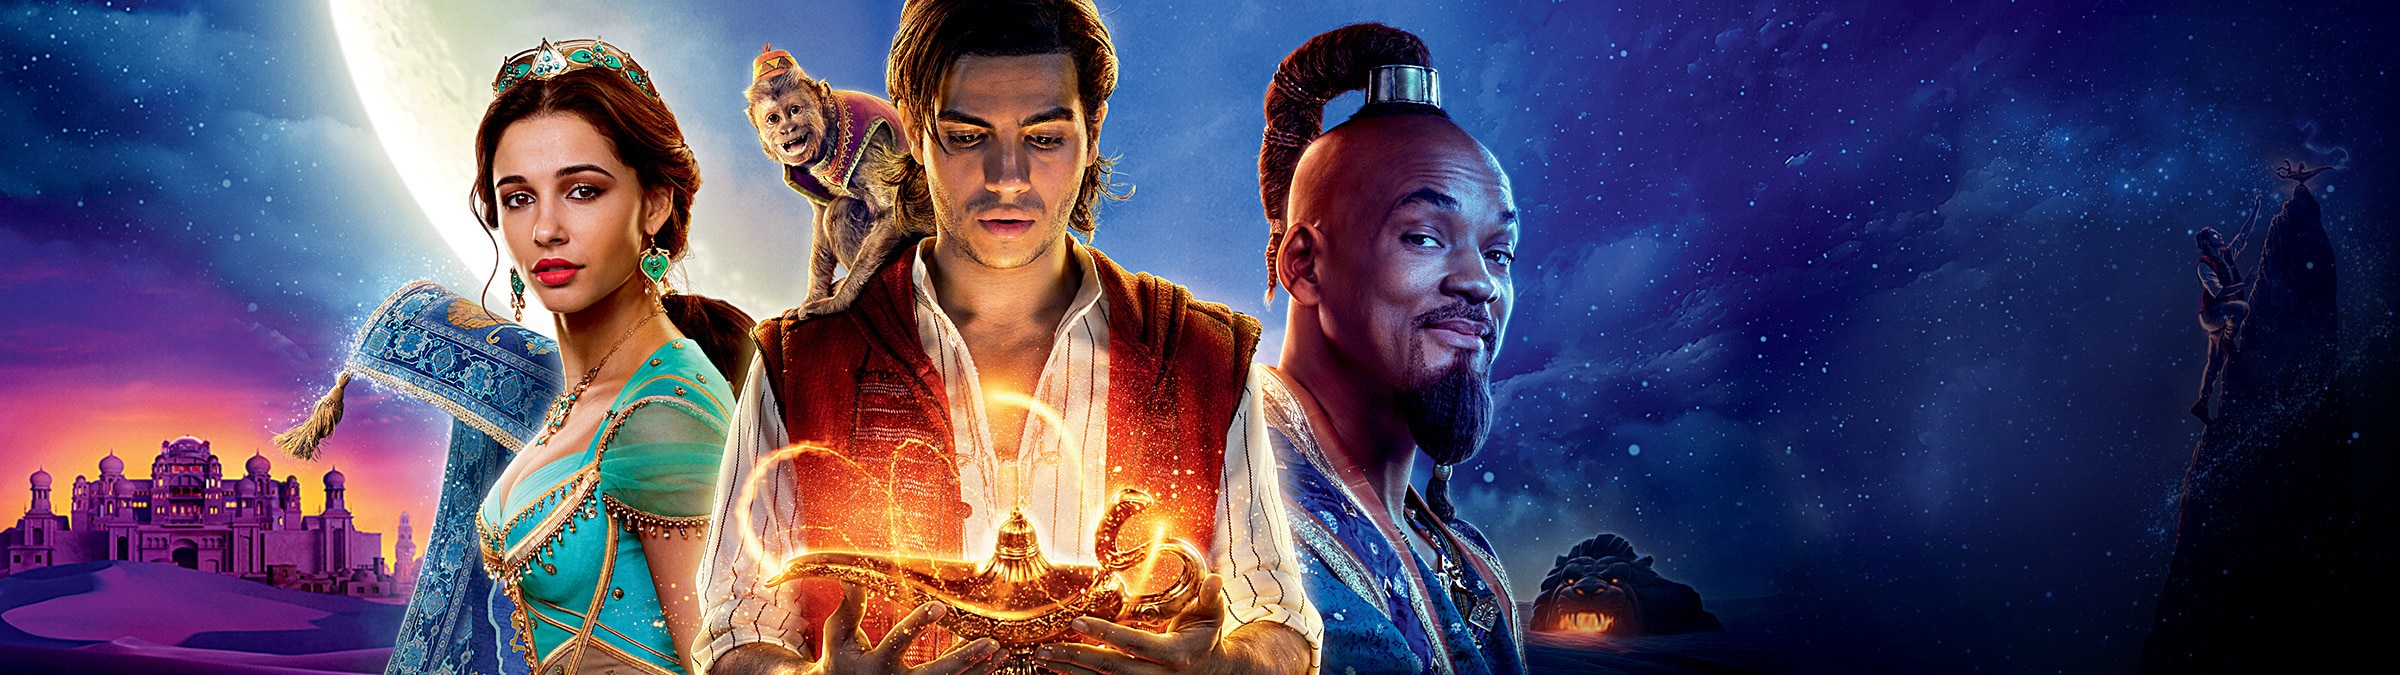 Aladdin - HomepageHero - In Cinemas 23 May - Aladdin Jasmine Genie SHORT payoff